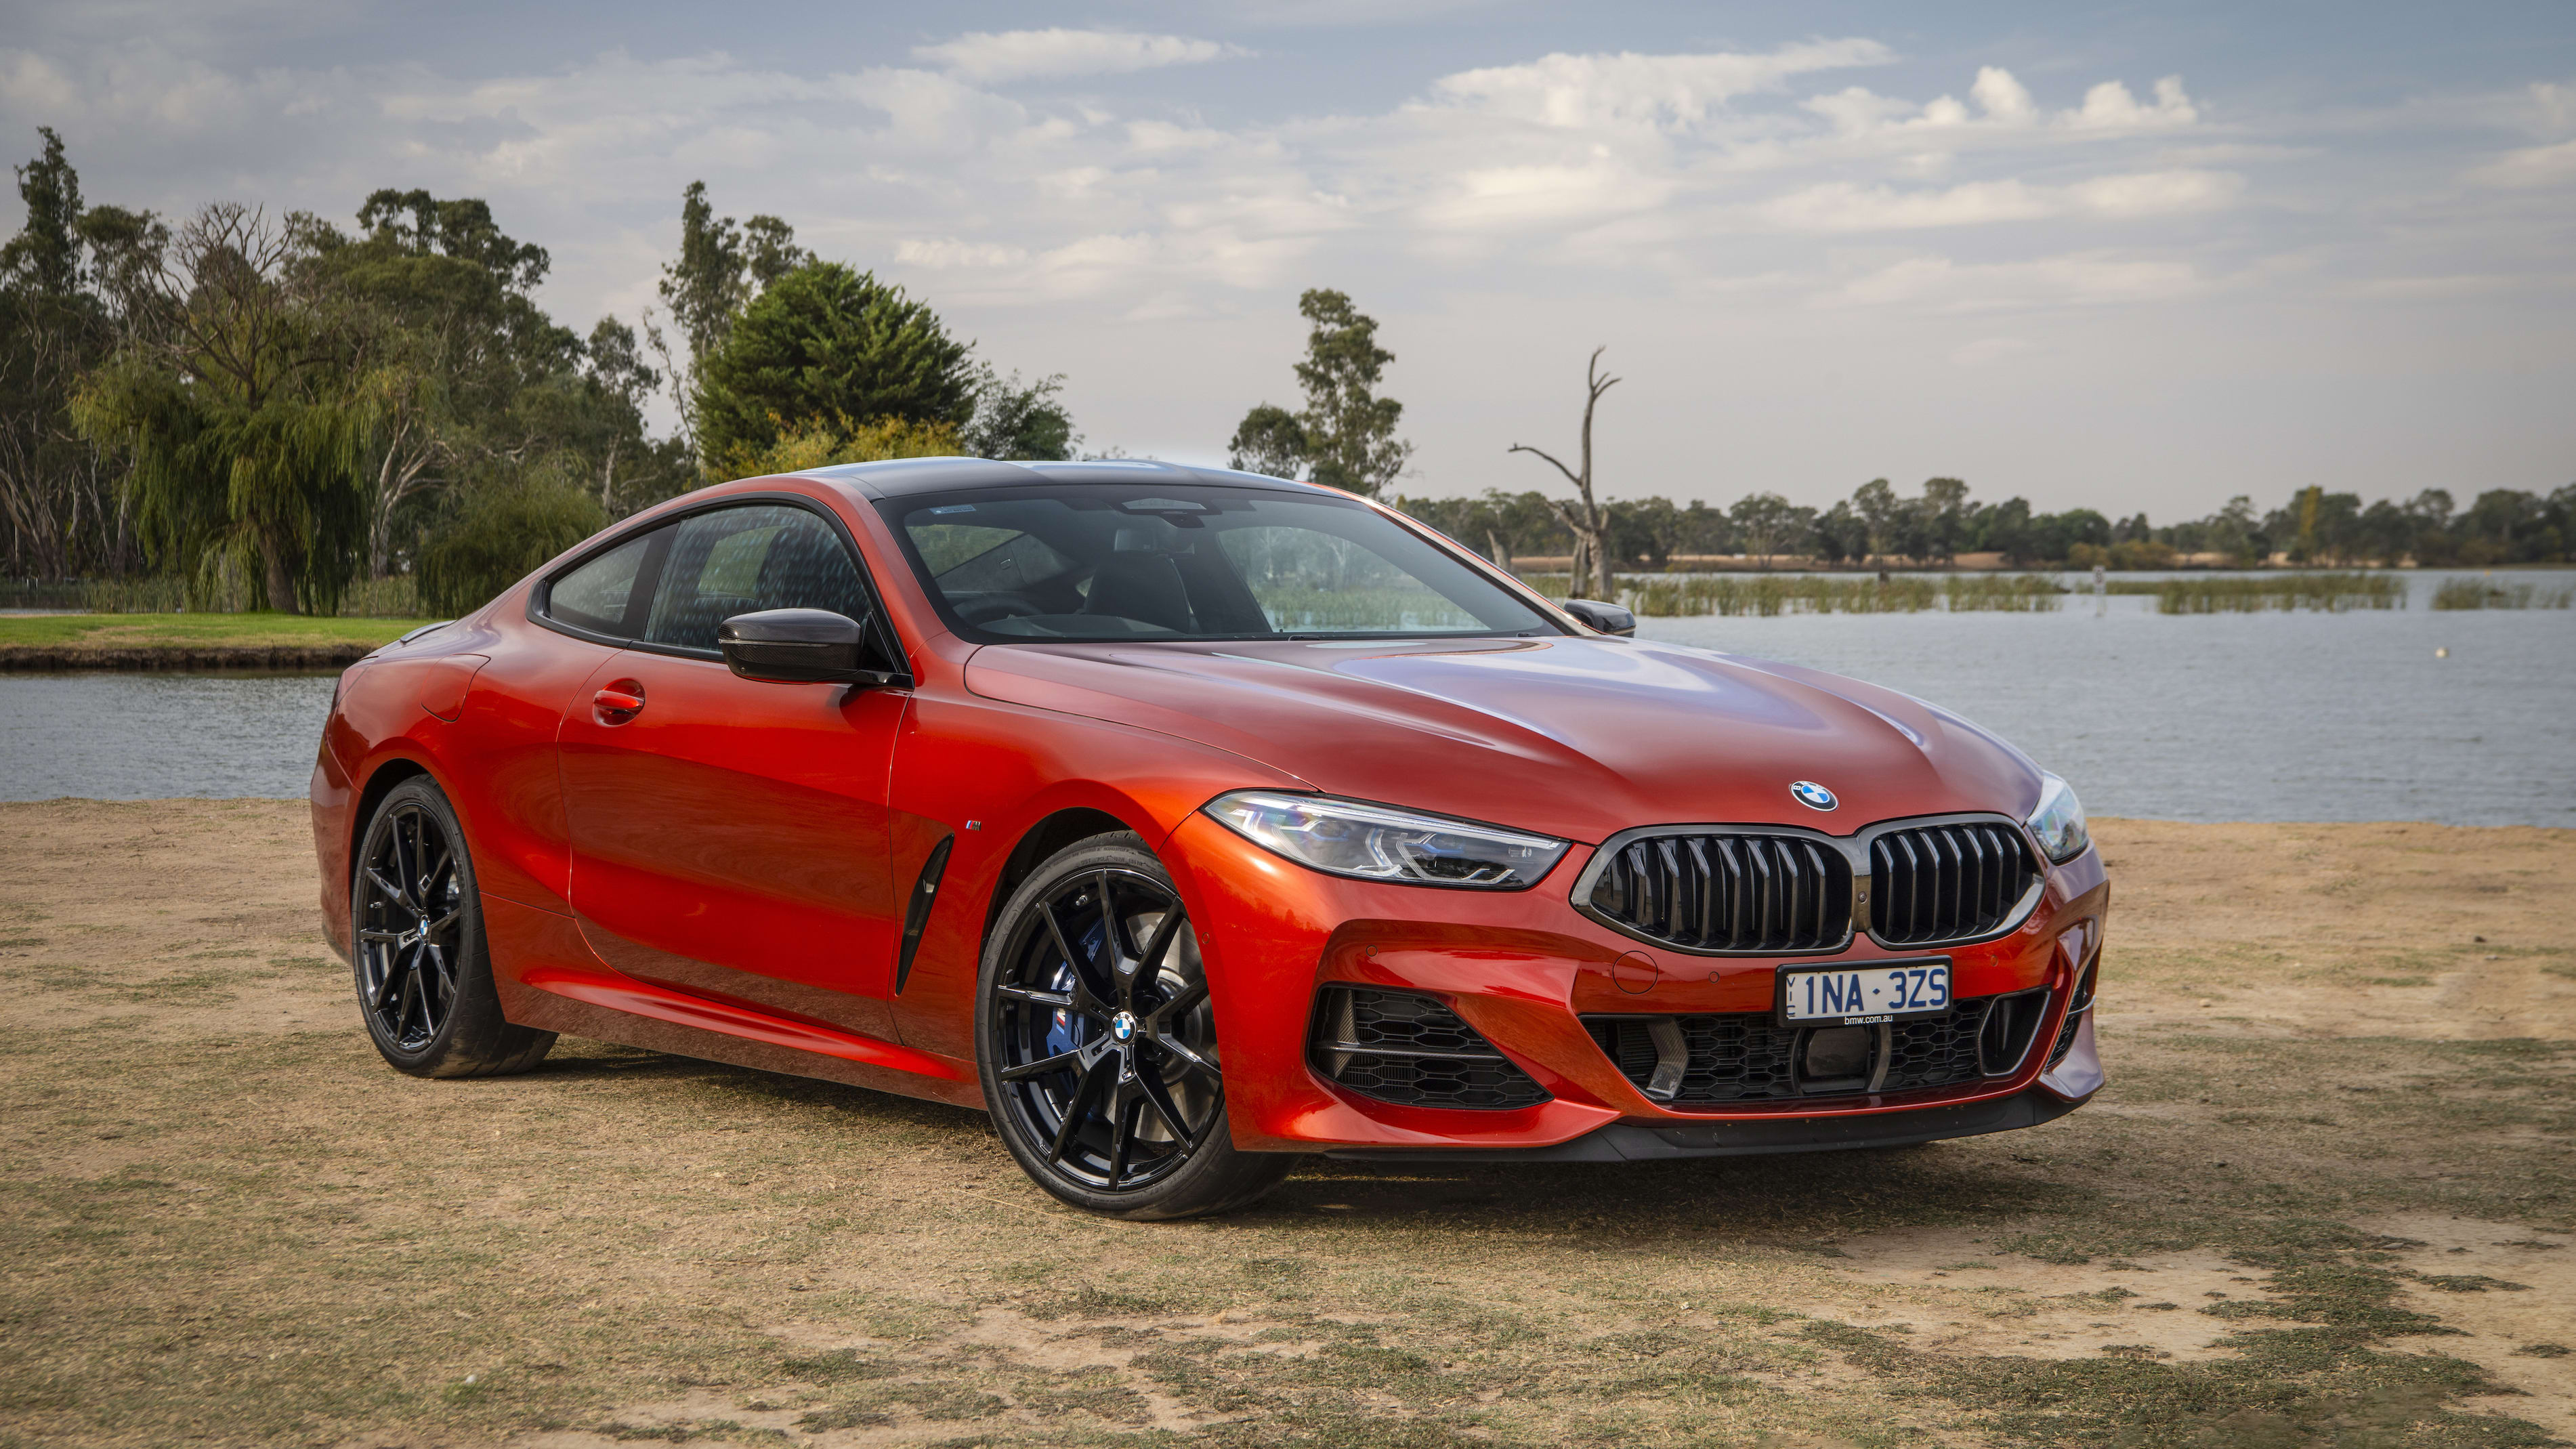 2019 Bmw 840i Pricing And Specs Caradvice